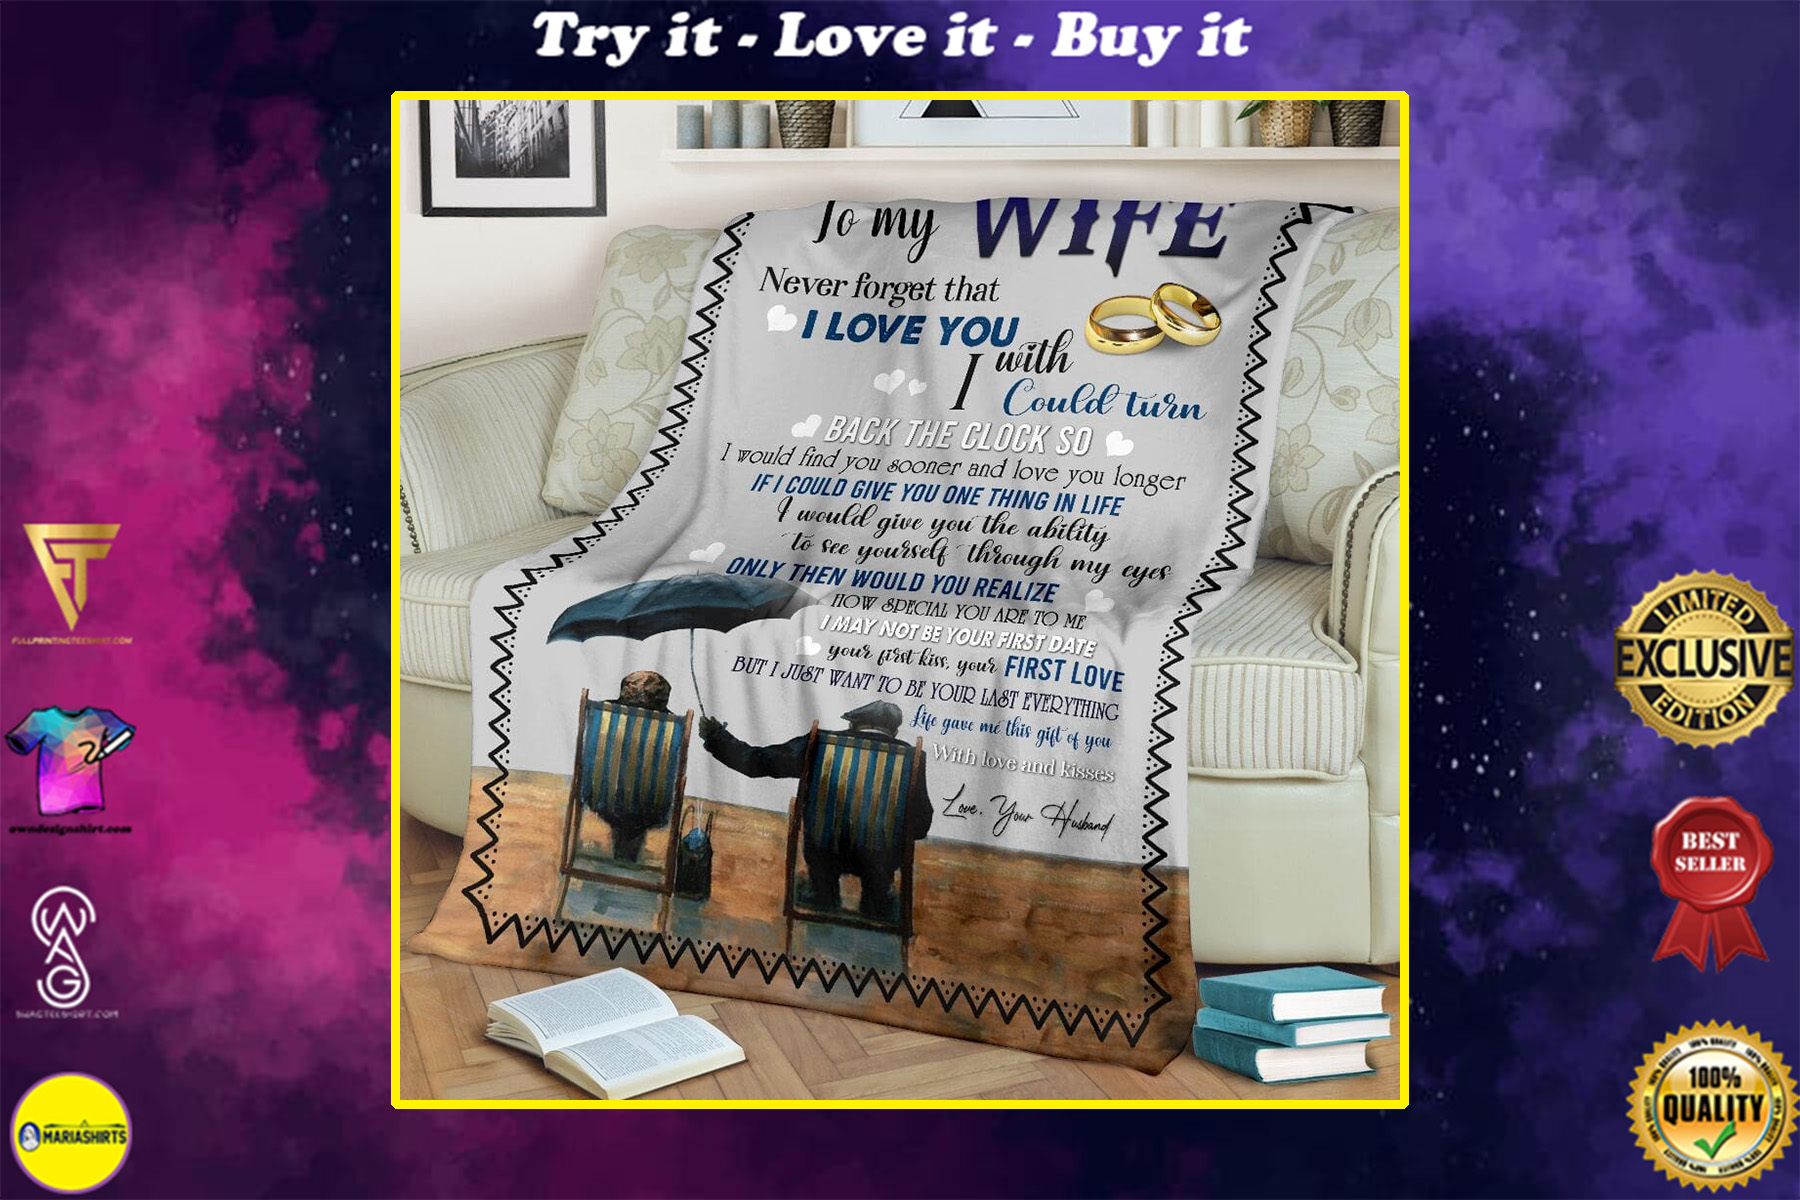 to my wife never forget that i love you with love and kisses love your husband blanket